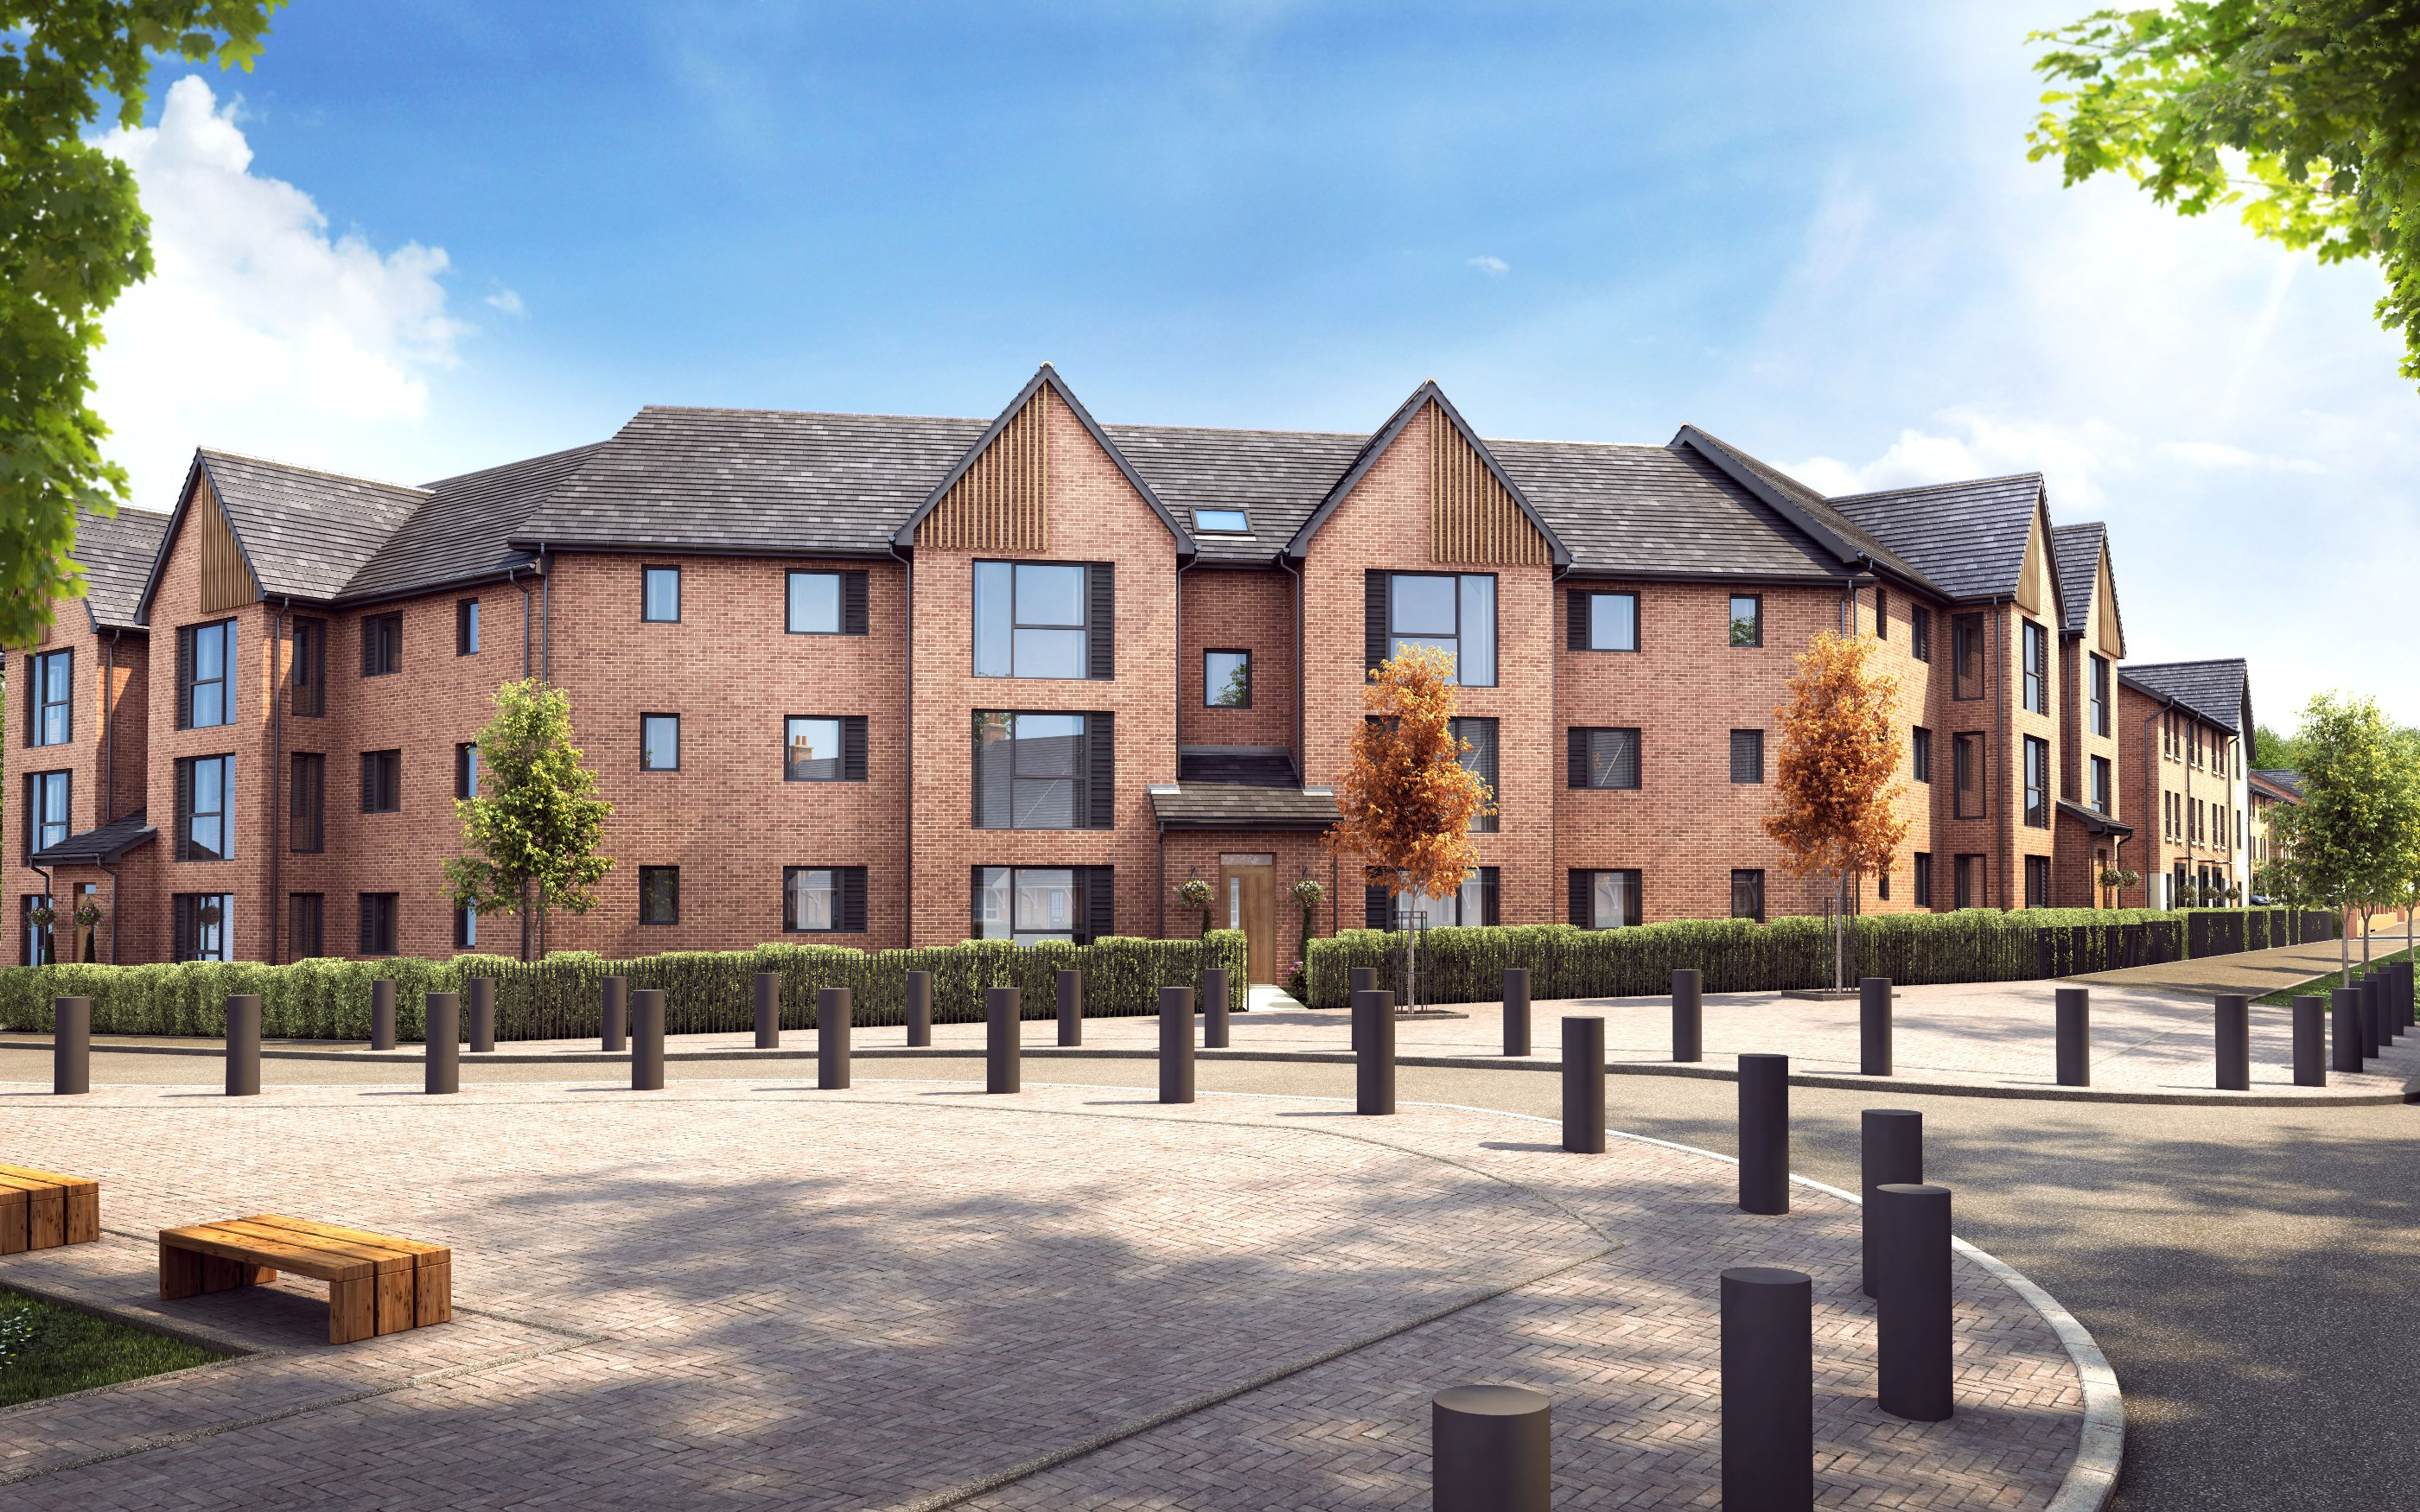 BARRATT HOMES TO LAUNCH BRAND NEW APARTMENTS IN LEICESTER